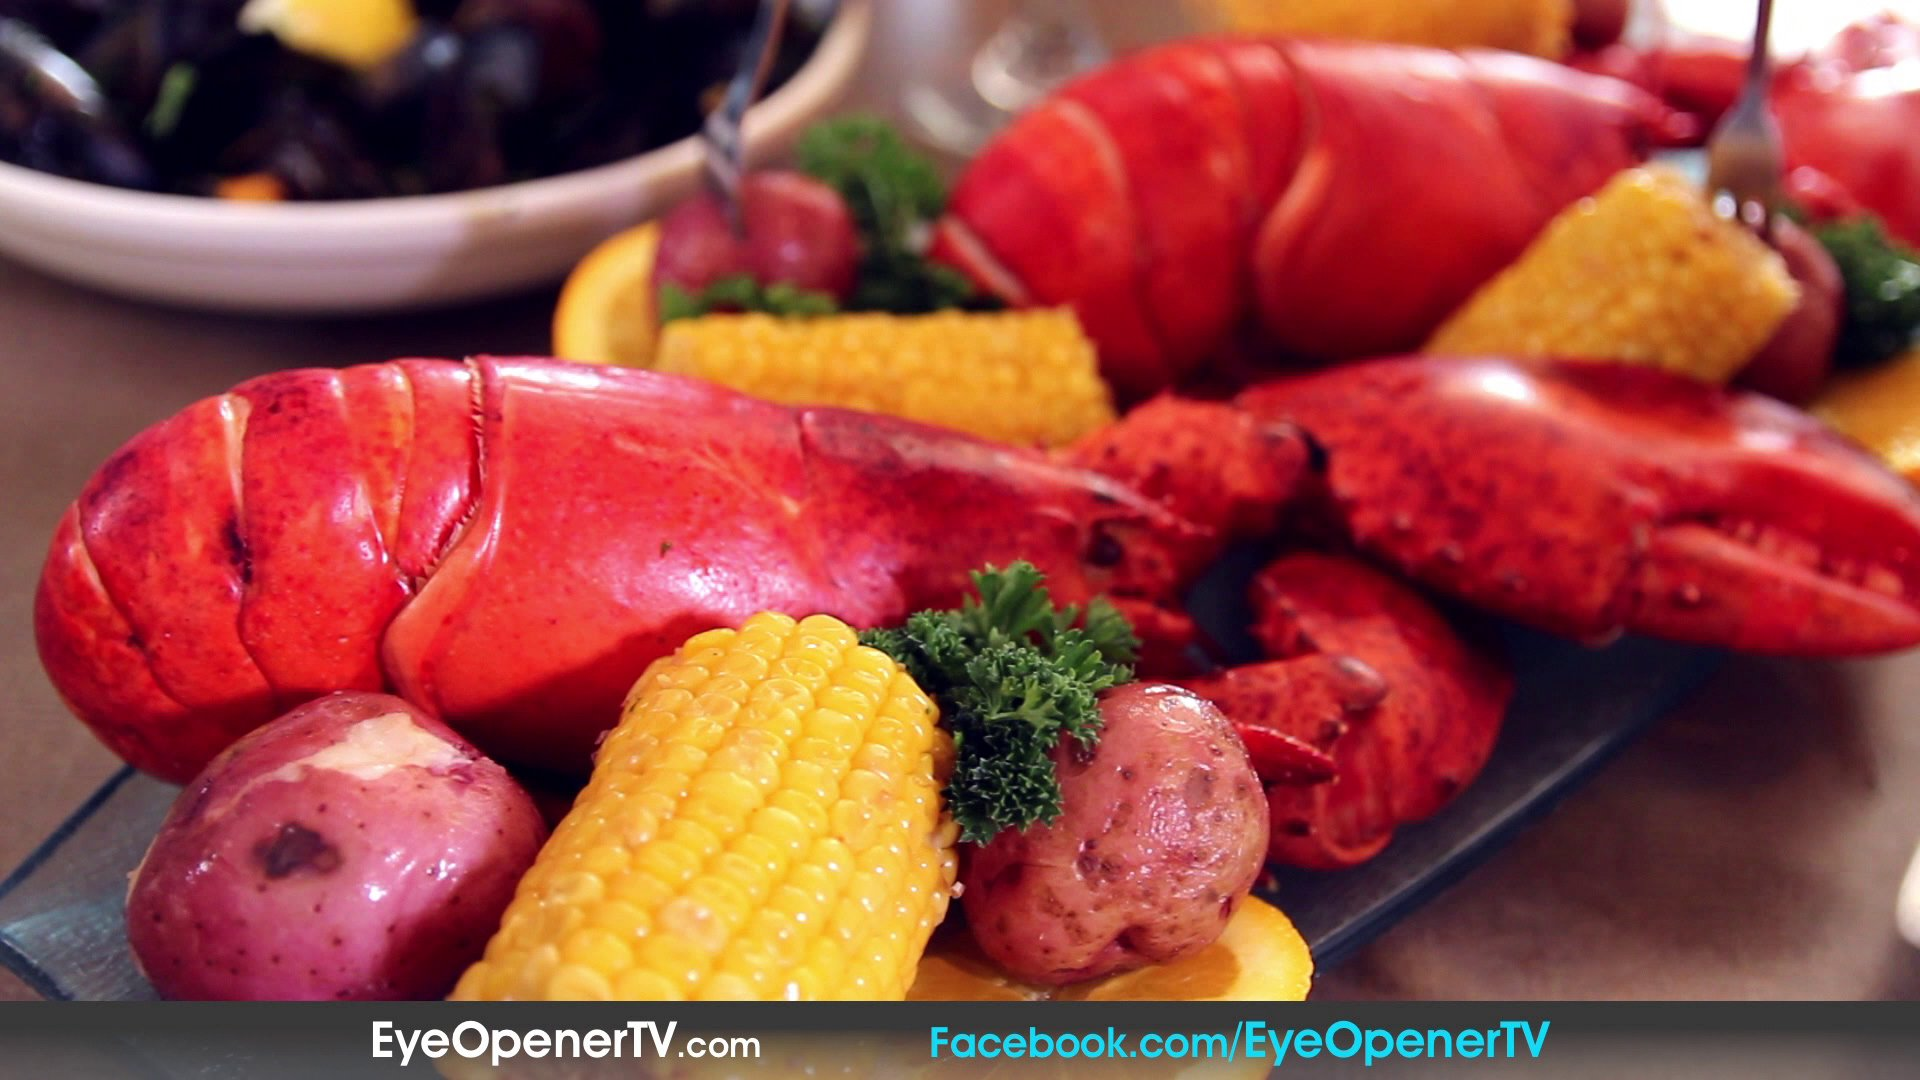 How to Make An Authentic Lobster Bake